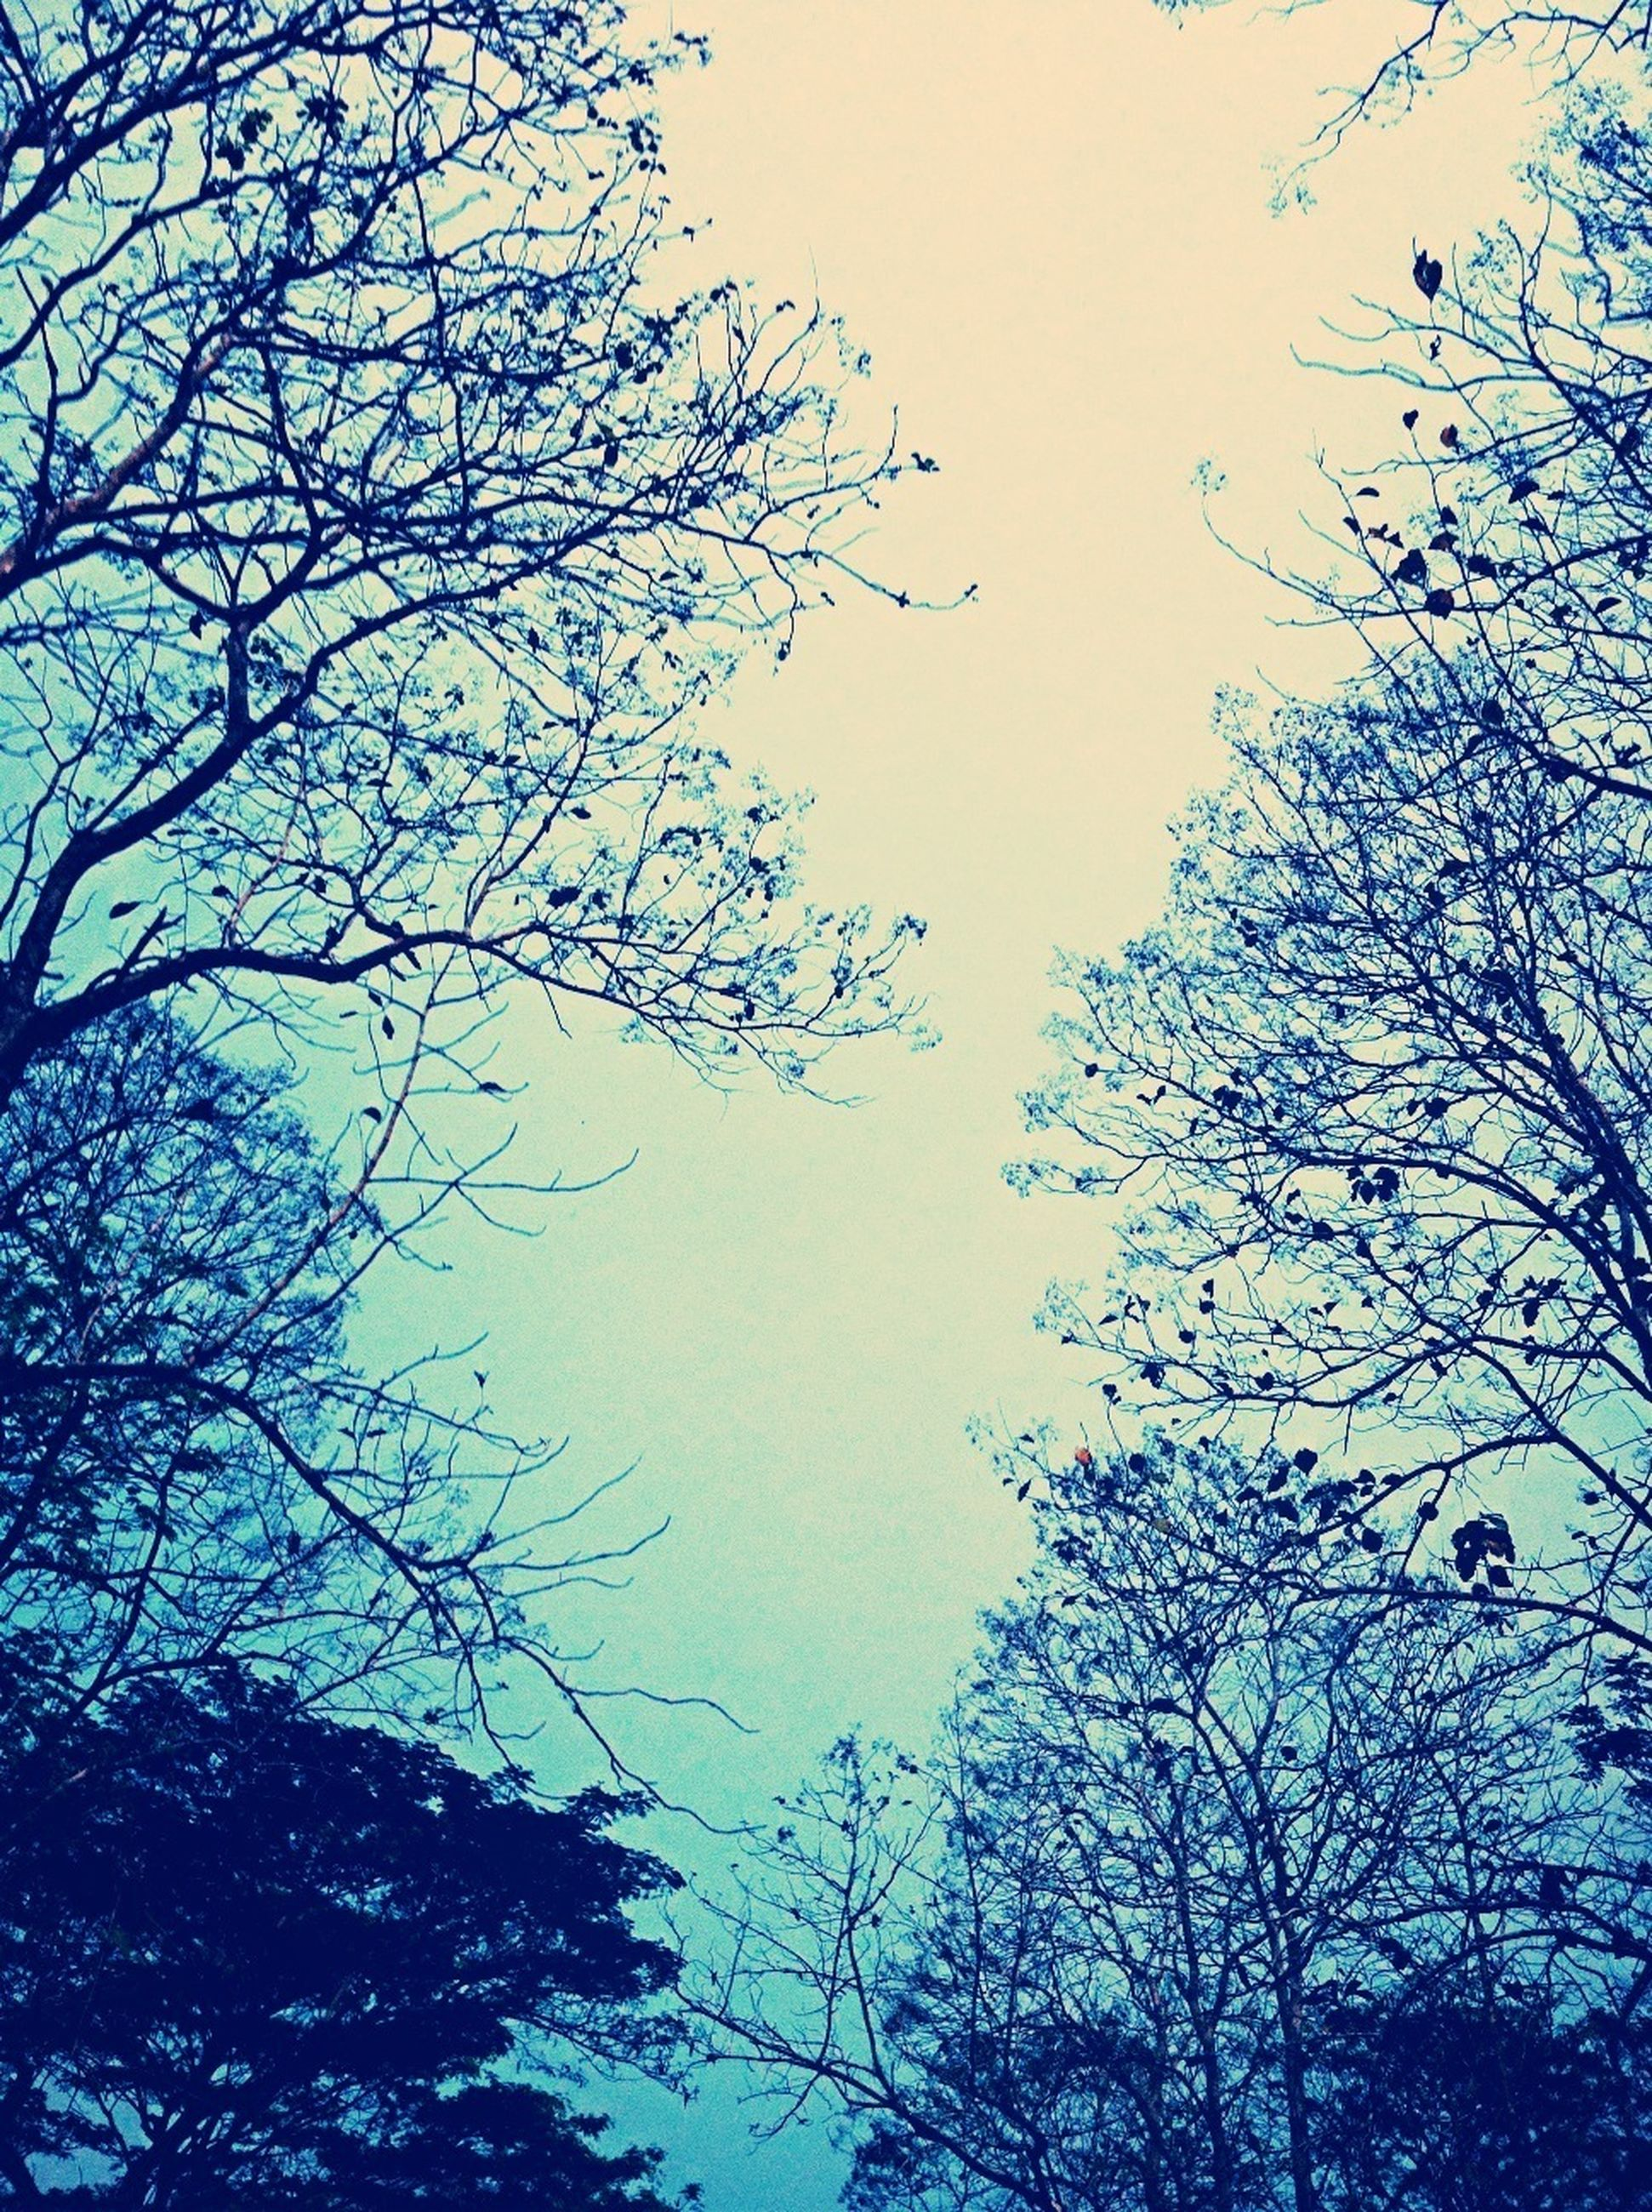 low angle view, branch, tree, clear sky, bare tree, nature, silhouette, blue, sky, growth, beauty in nature, tranquility, outdoors, no people, day, dusk, high section, copy space, scenics, treetop